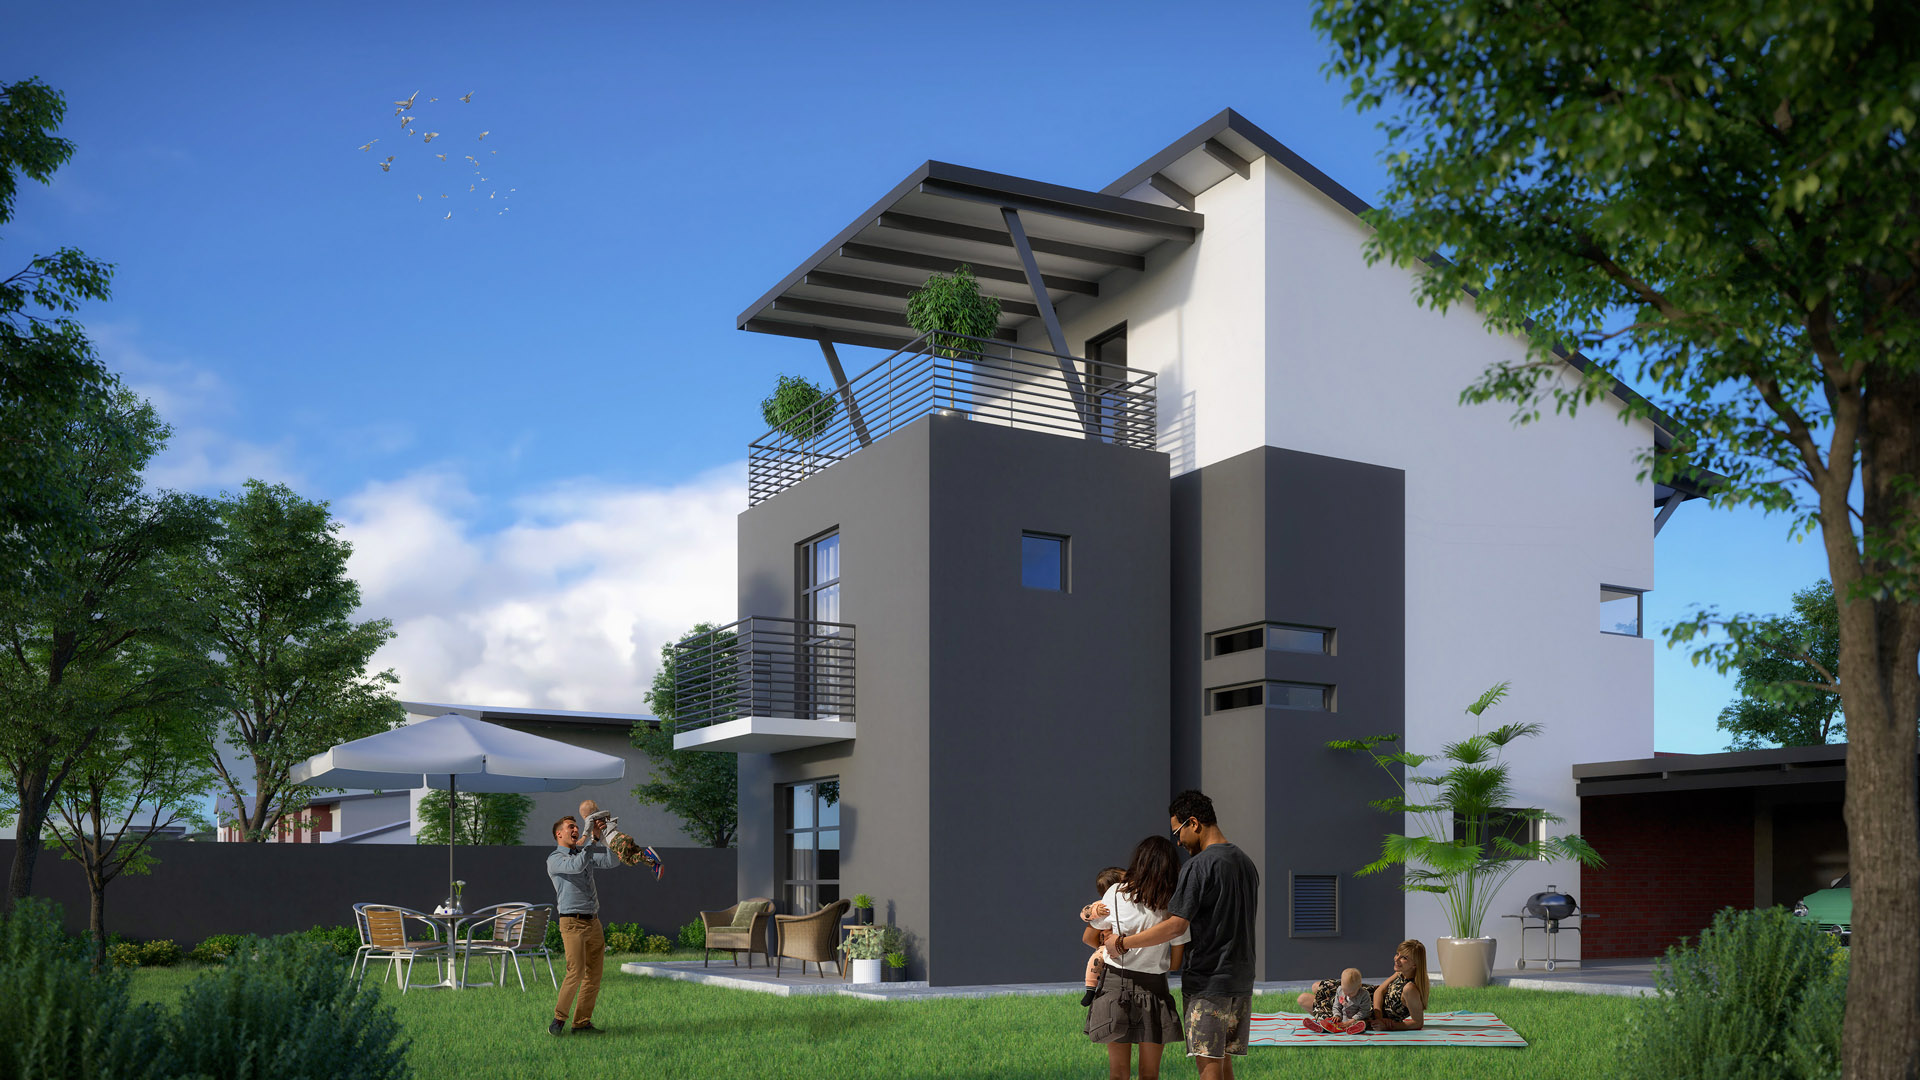 URBAN HOME DOUBLE STOREY 3 BEDROOMS + 2 BATHROOMS